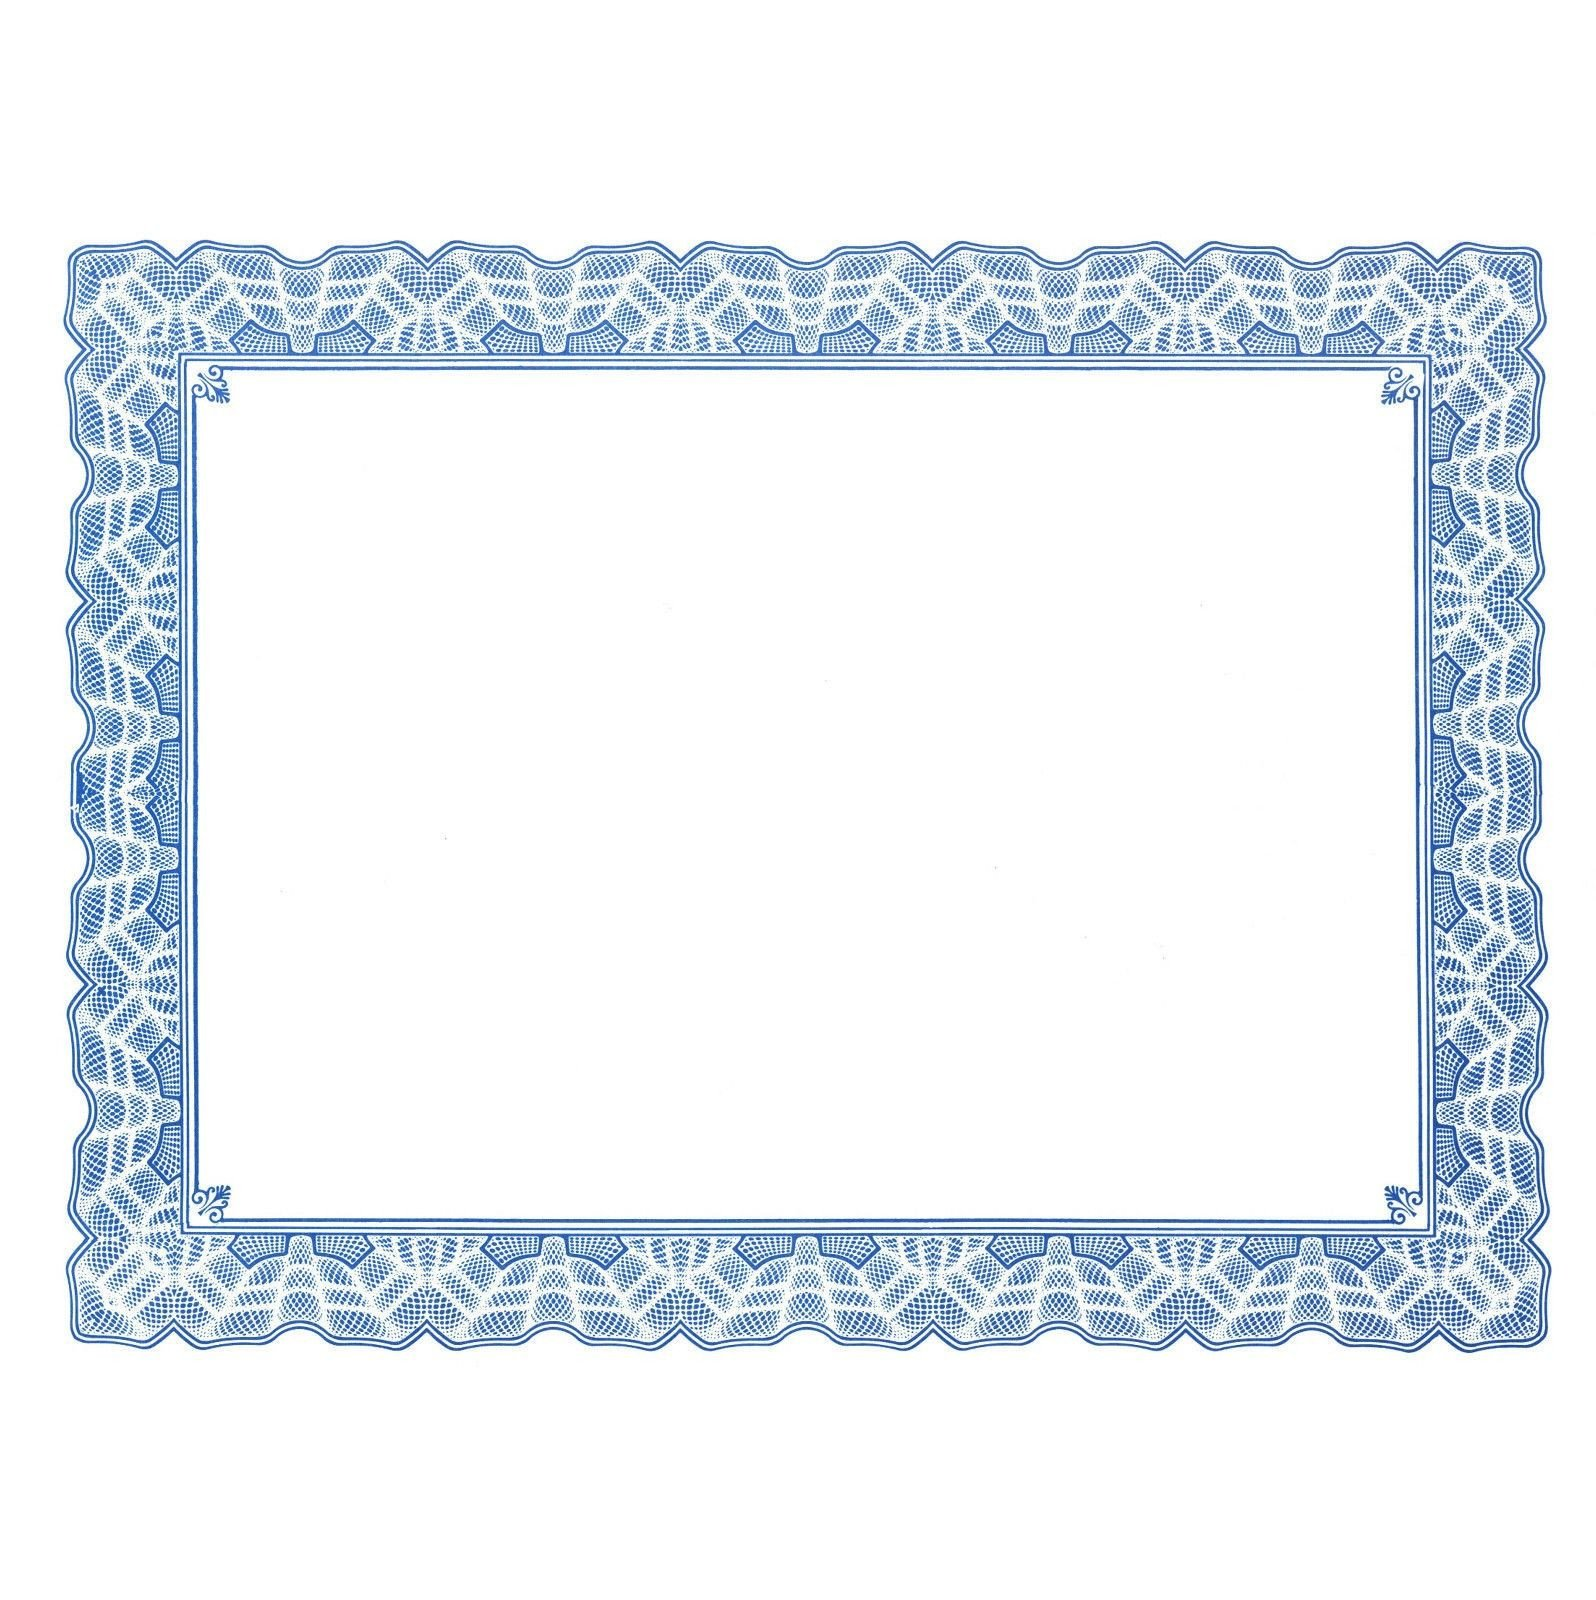 Border Template for Word Free Certificate Border Templates for Word